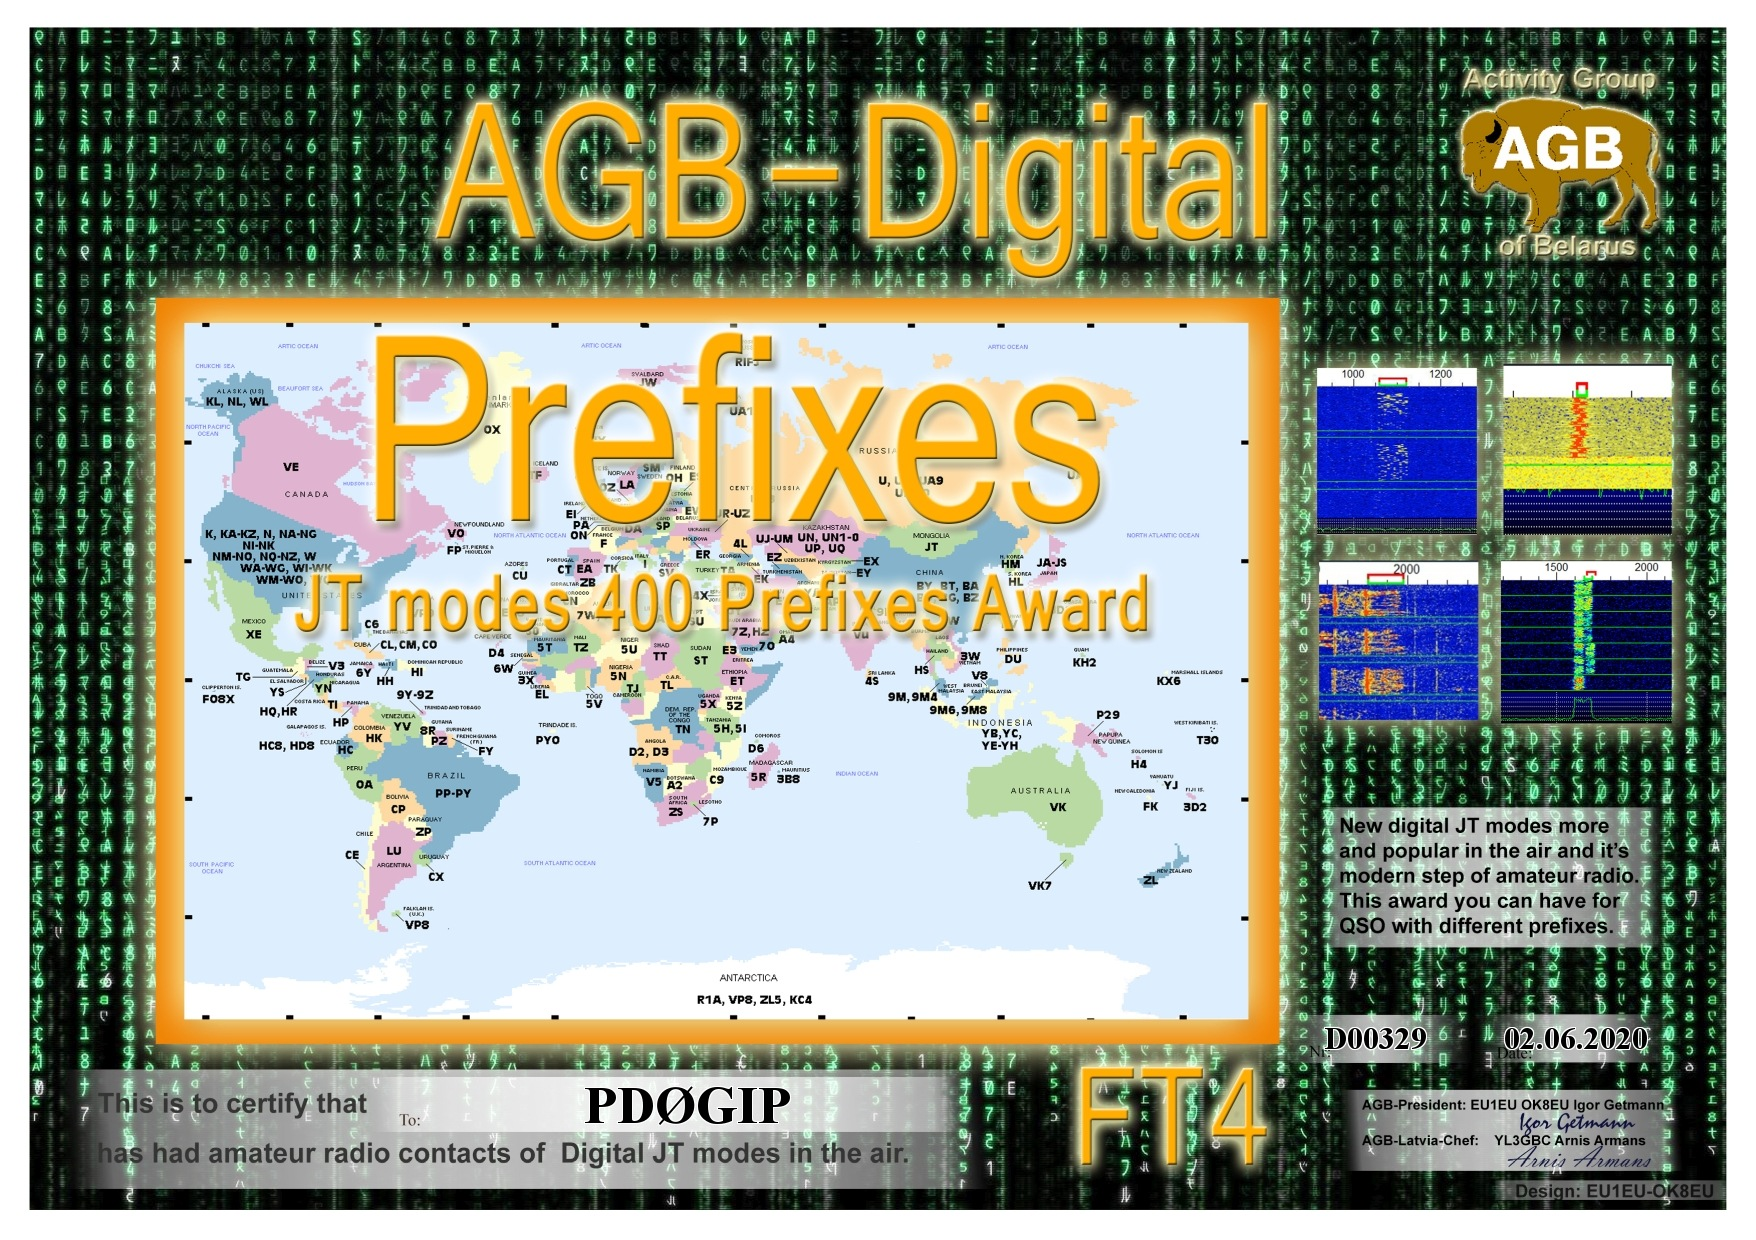 PD0GIP PREFIXES FT4 400 AGB